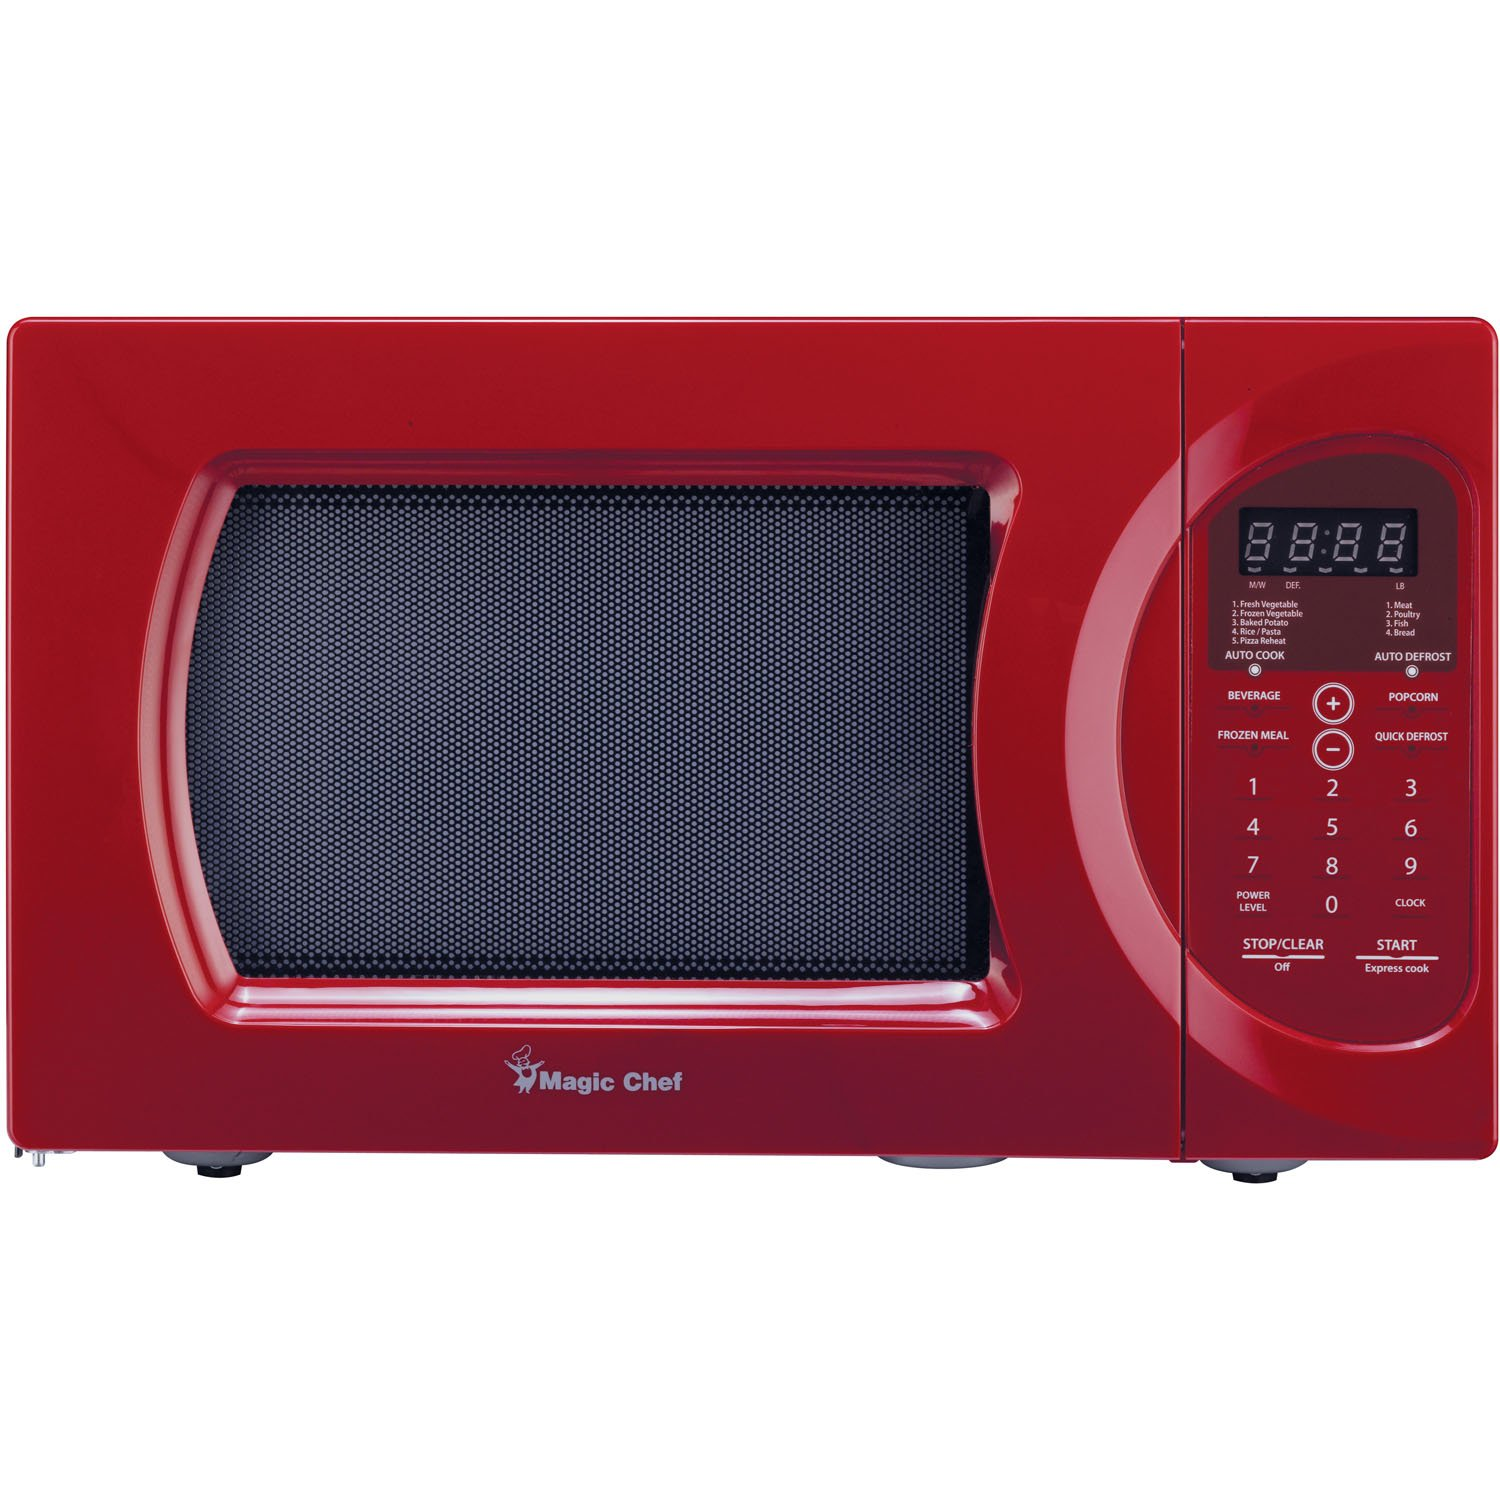 magic chef mcd992r 0 9 cu ft 900w oven in red countertop microwave